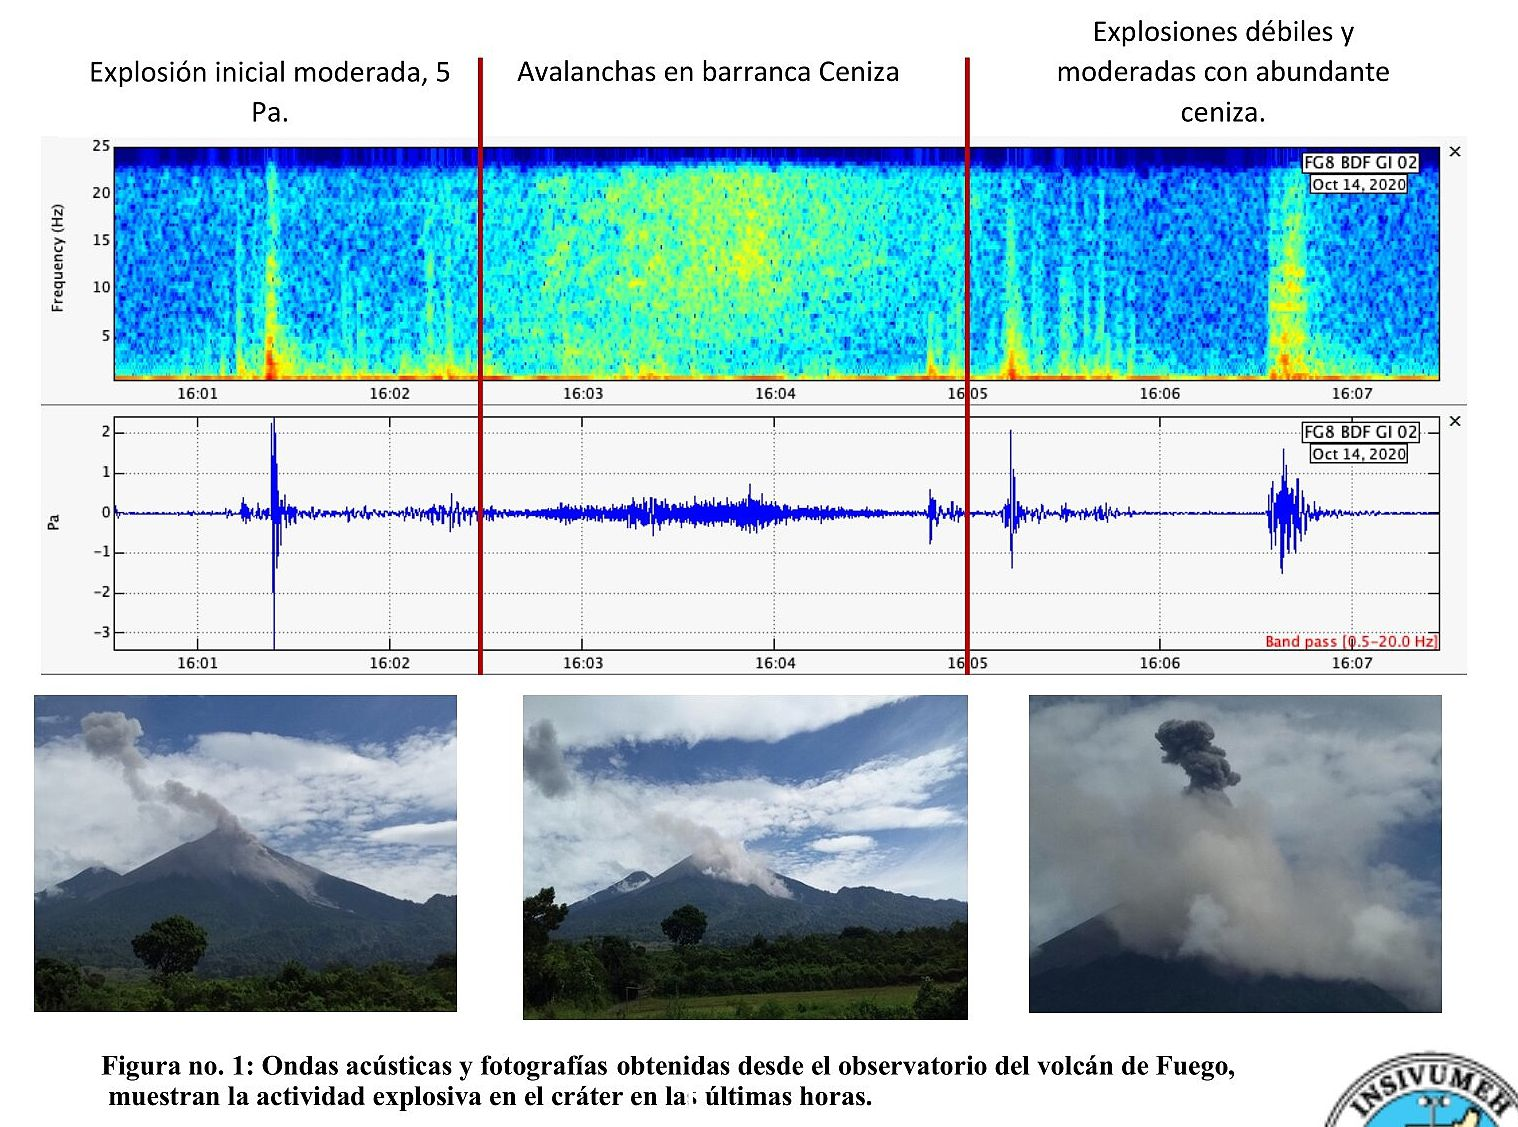 Fuego - 14.10.2020 / 10h - acoustic waves and activity of the last hours - Doc. Insivumeh